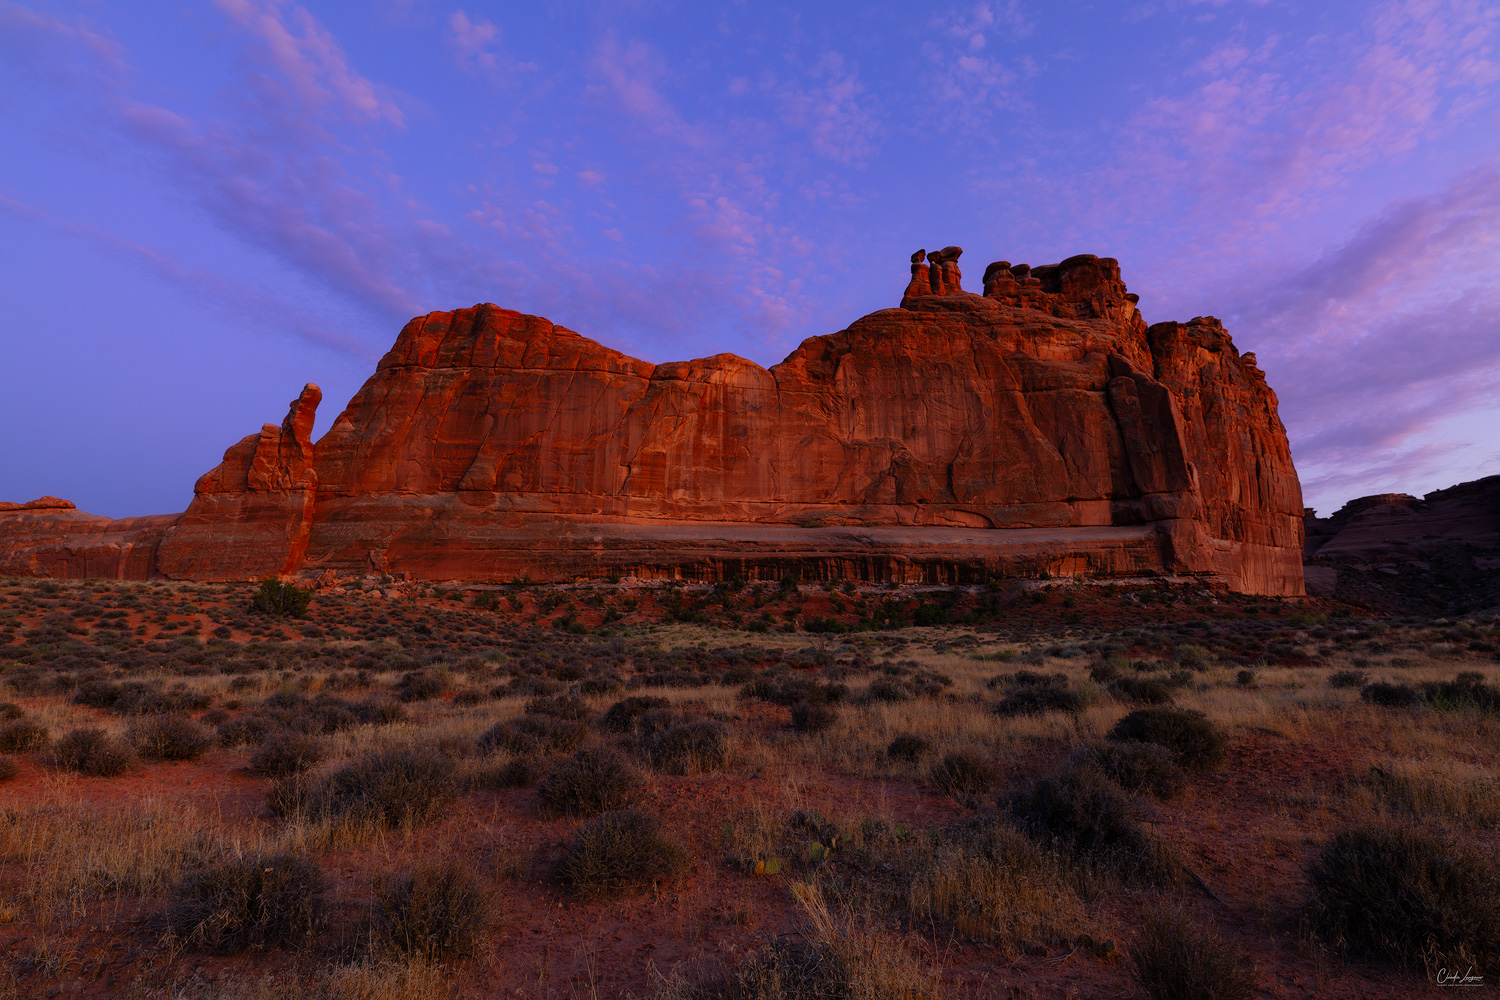 View of the Tower of Babel in Arches National Park in Utah at sunset.